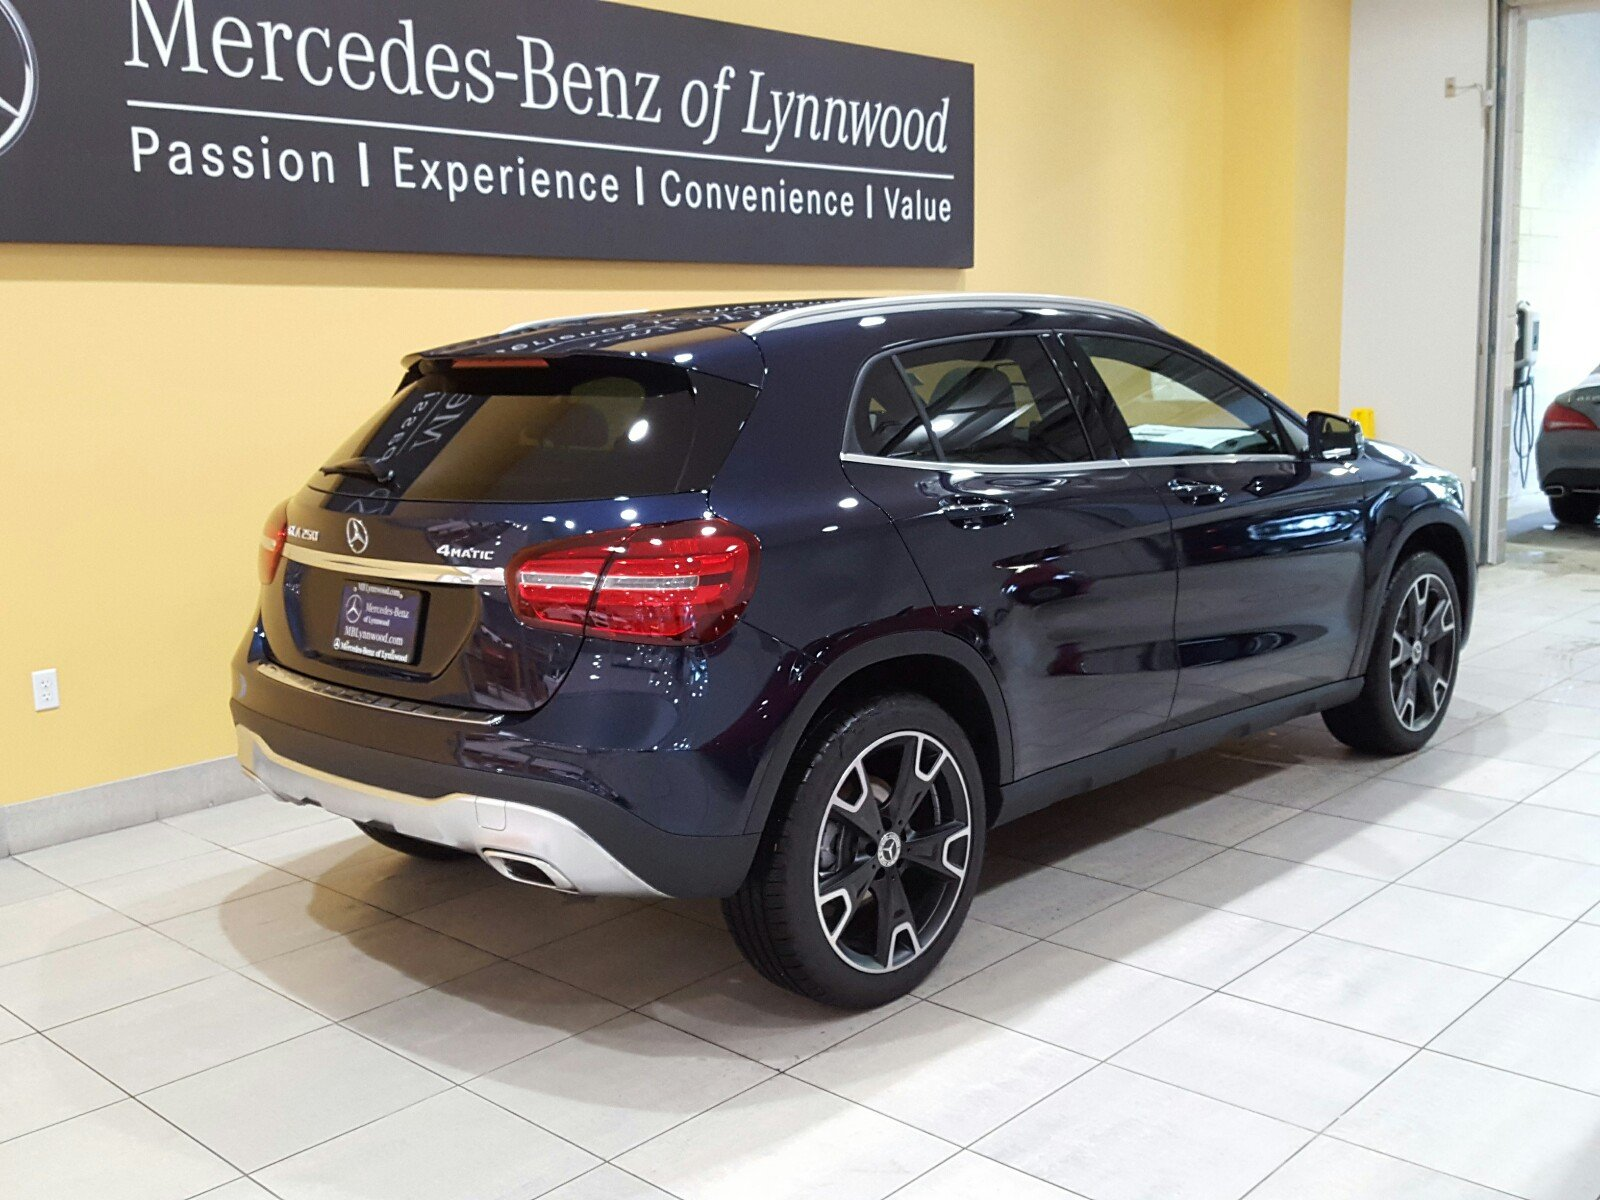 finance lease small and ok mercedes mb oklahoma suv exterior new class price dr image main gla htm city specials benz